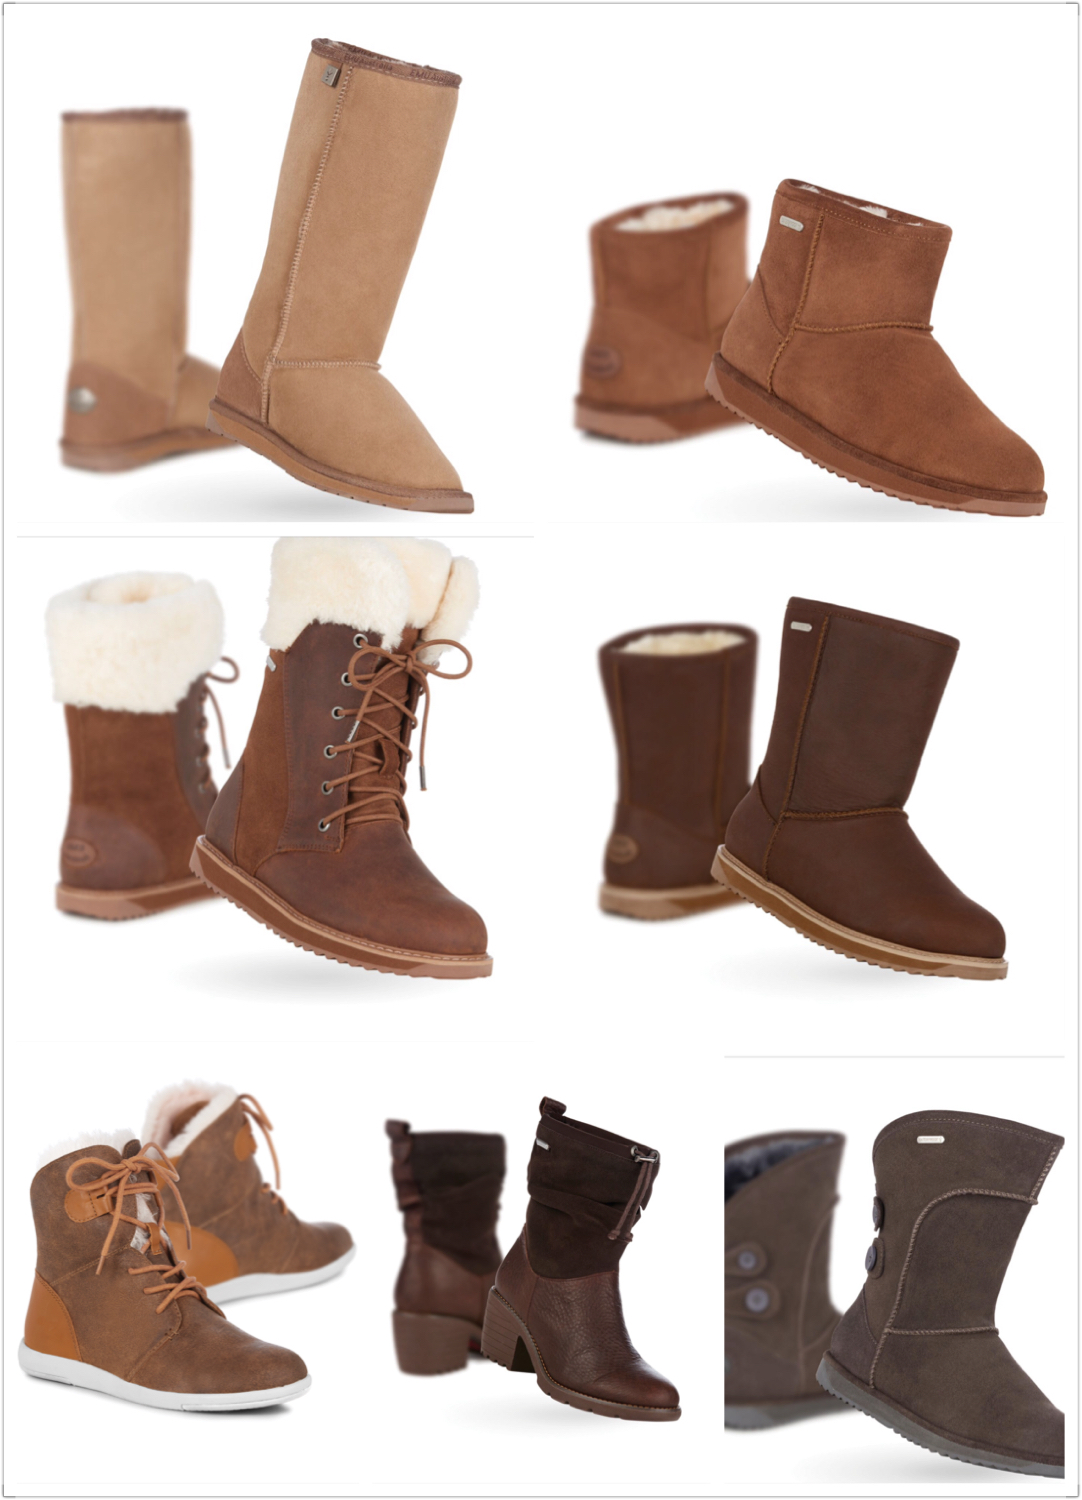 - Sheepskin Footwear, EMU AUSTRALIA - <br> (prices on request)